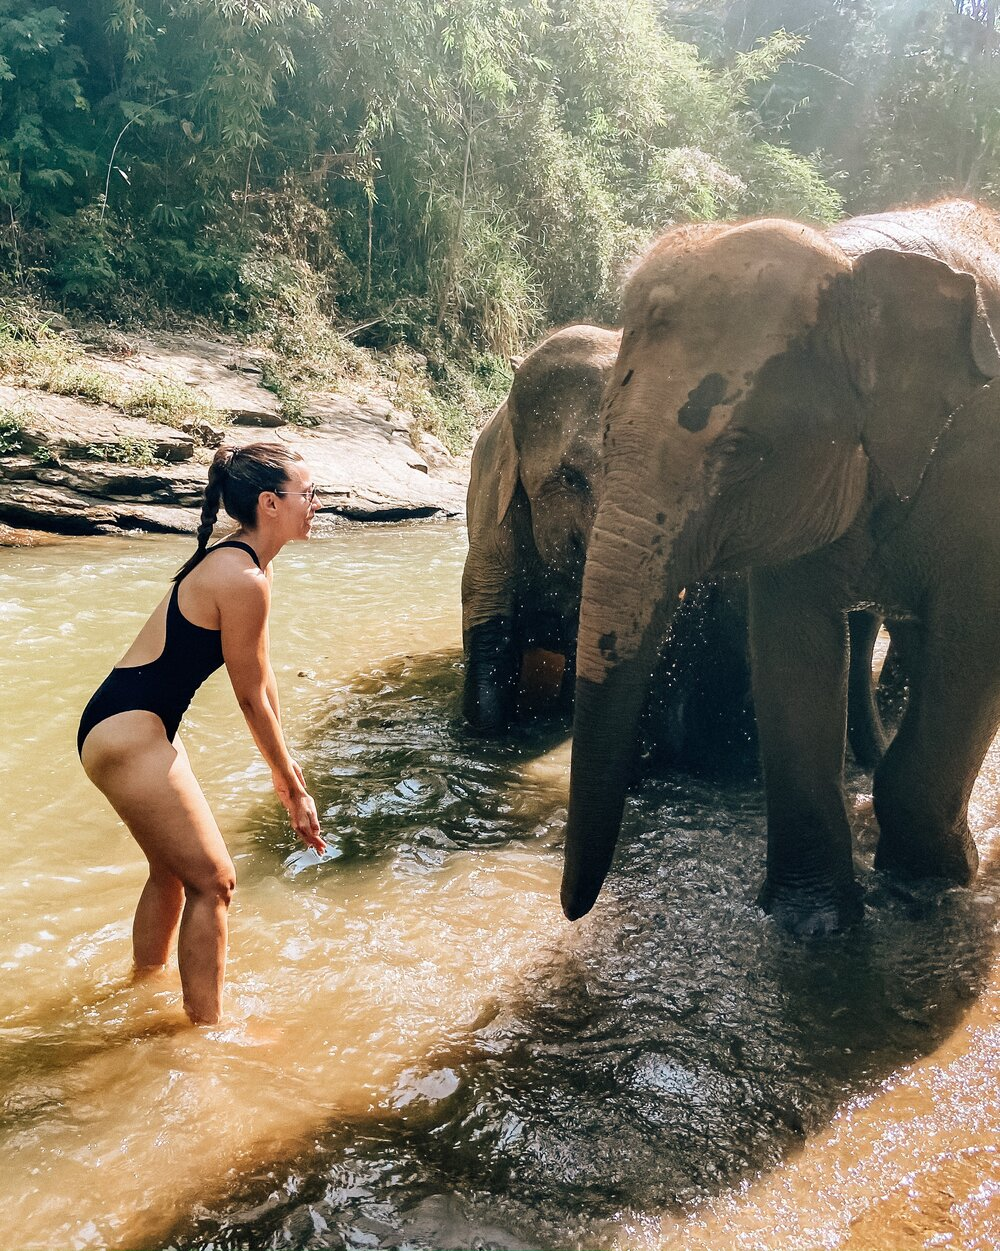 Swimming with elephants at ethical elephant sanctuary in Thailand